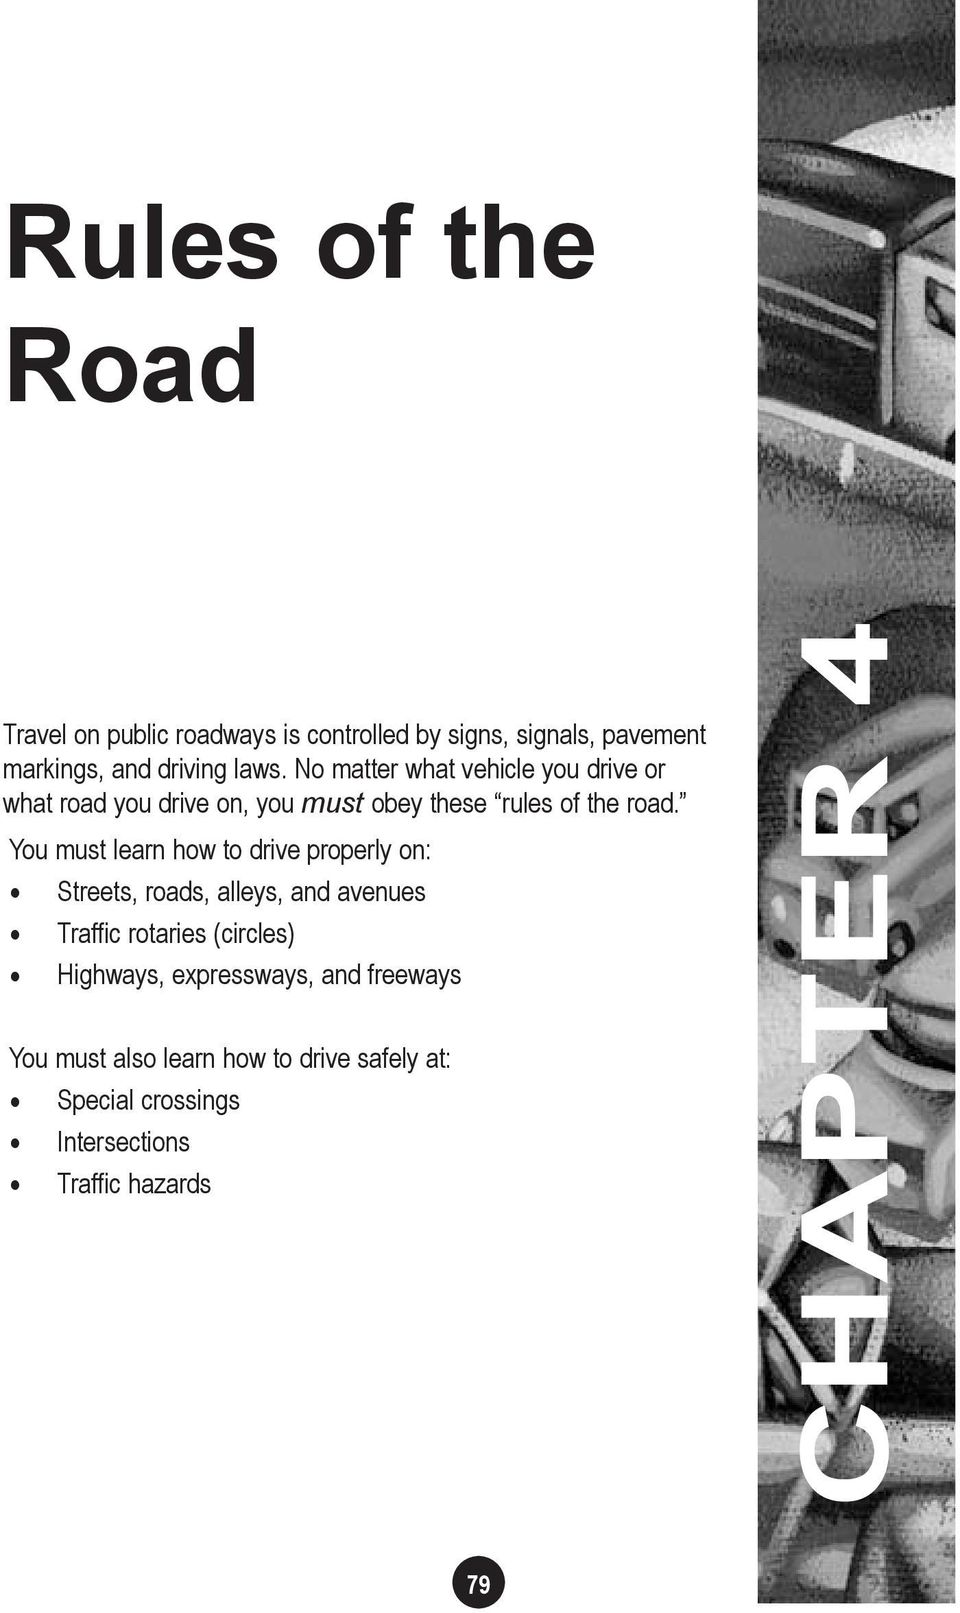 You must learn how to drive properly on: Streets, roads, alleys, and avenues Traffic rotaries (circles) Highways,